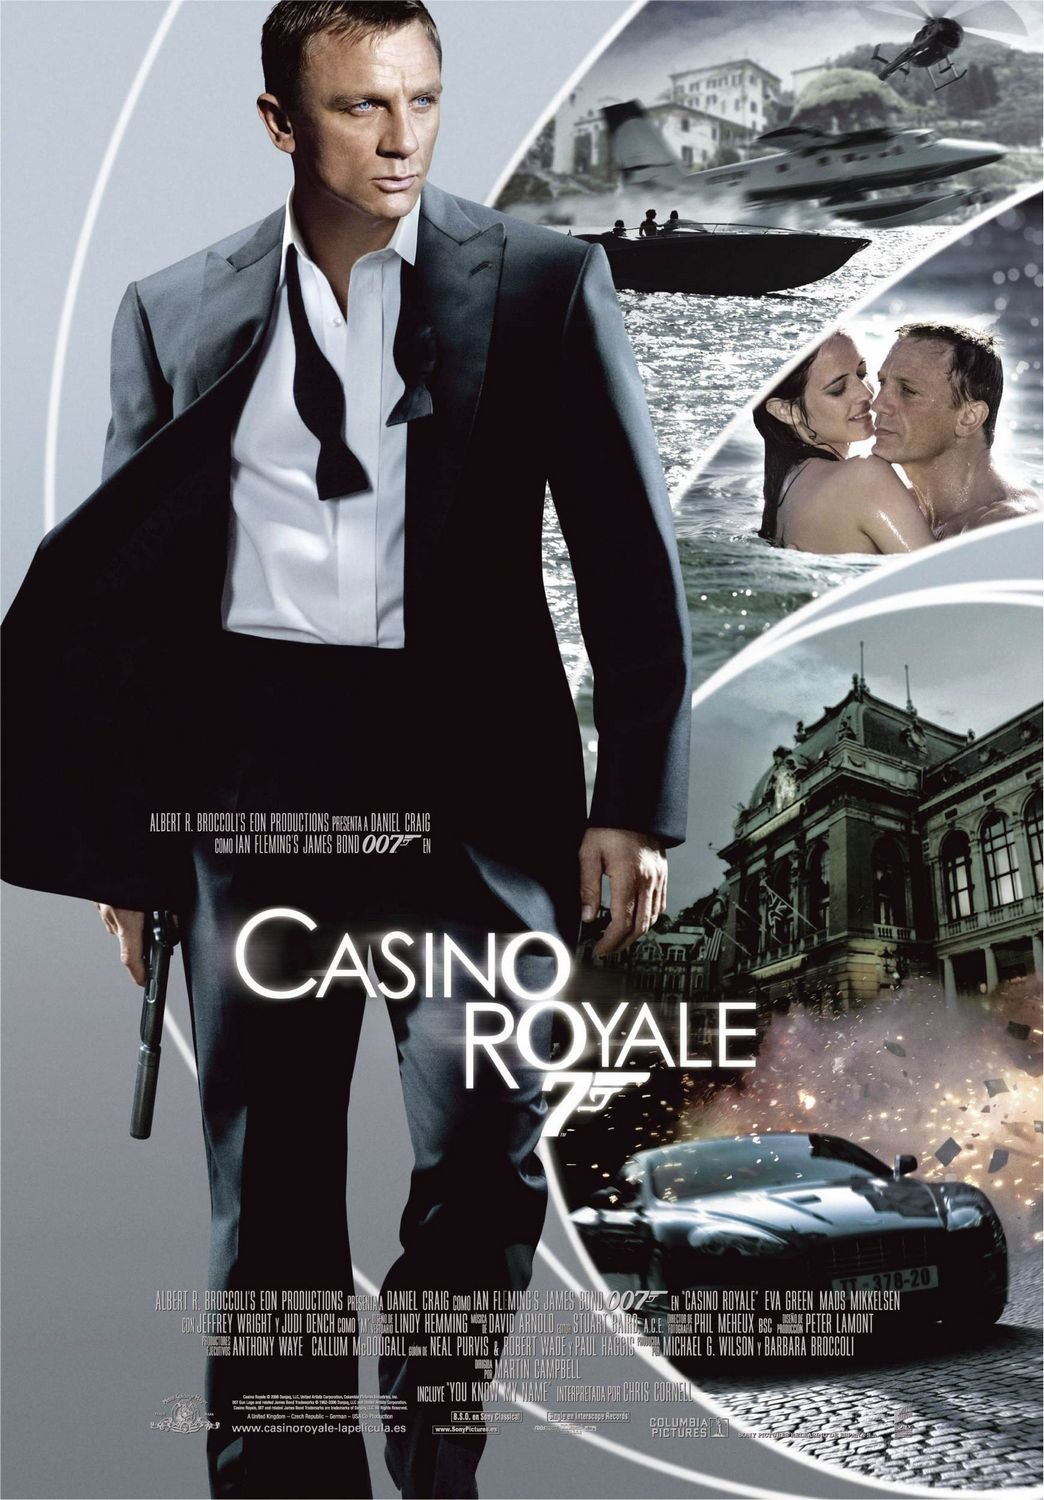 james bond casino royale full movie online novolein